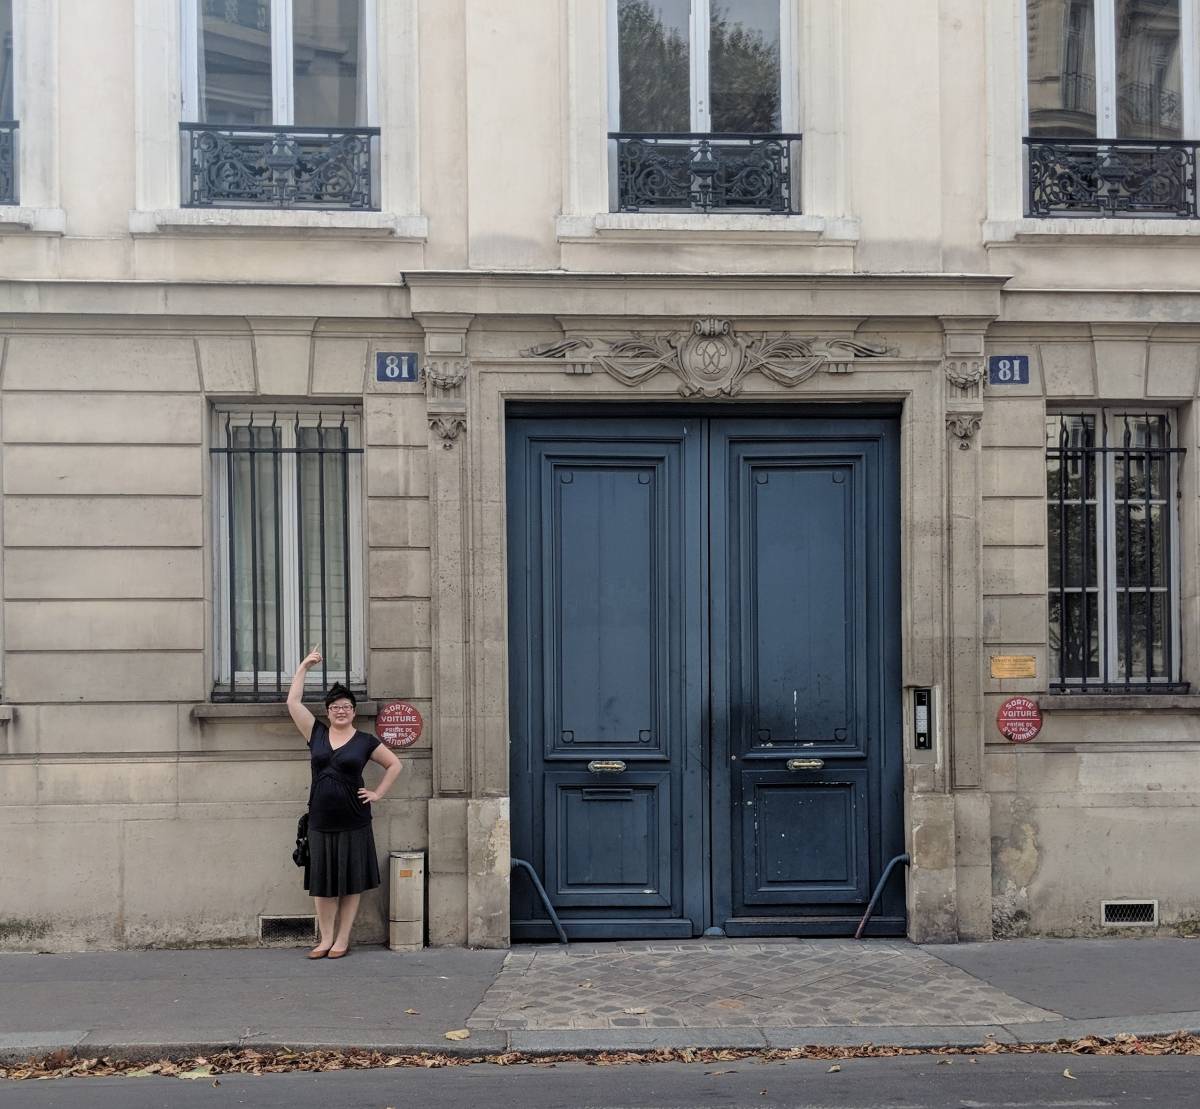 Lisa at 81 Rue de L'Universite, Paris